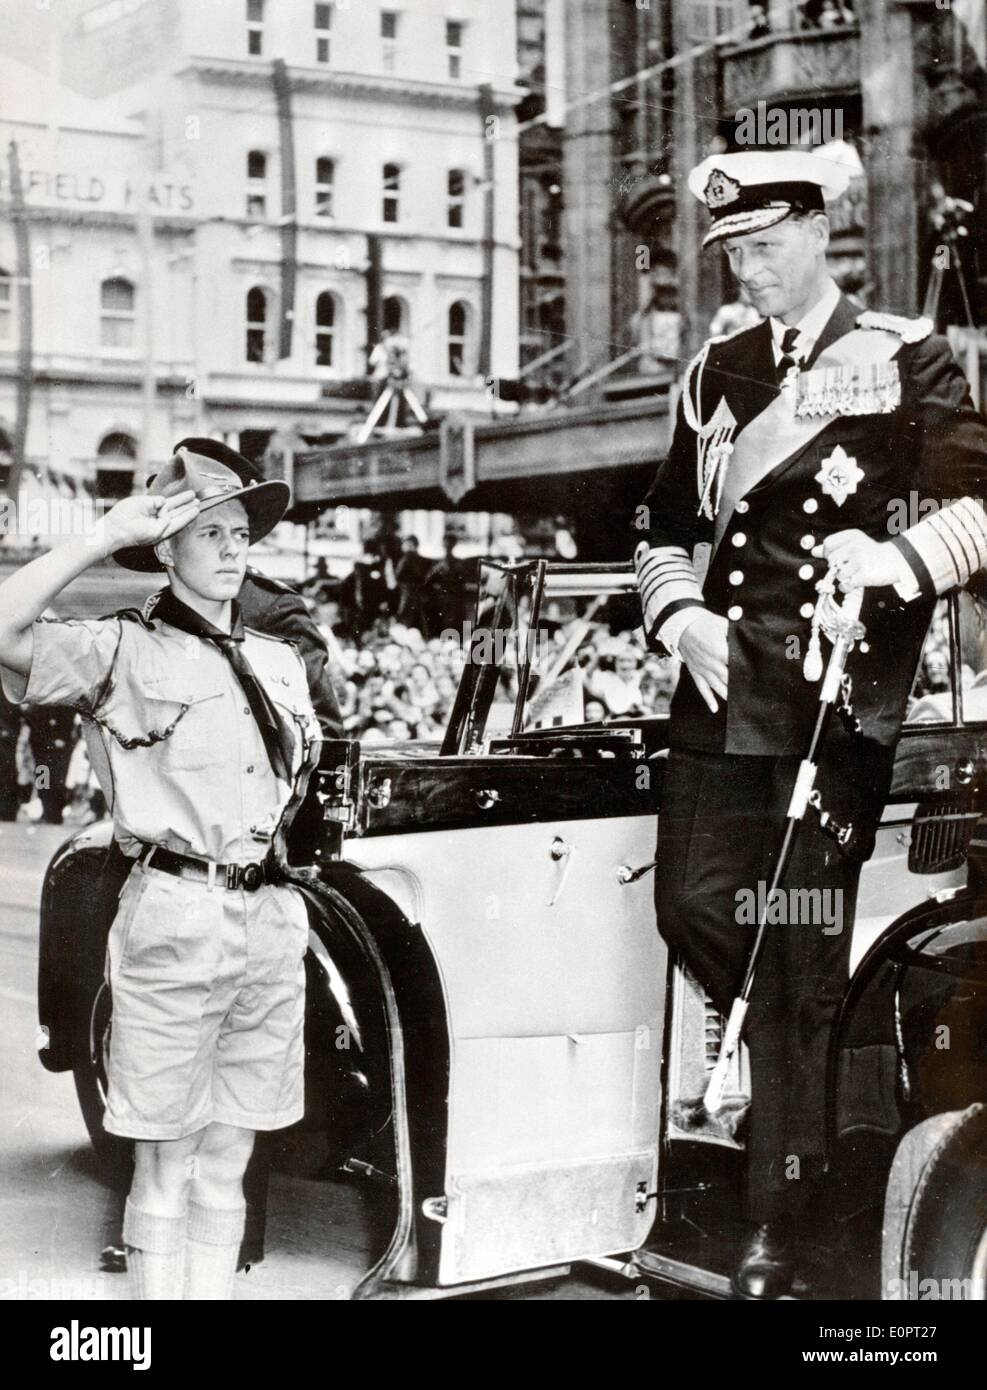 Prince Philip arriving at the Melbourne Olympic Games - Stock Image